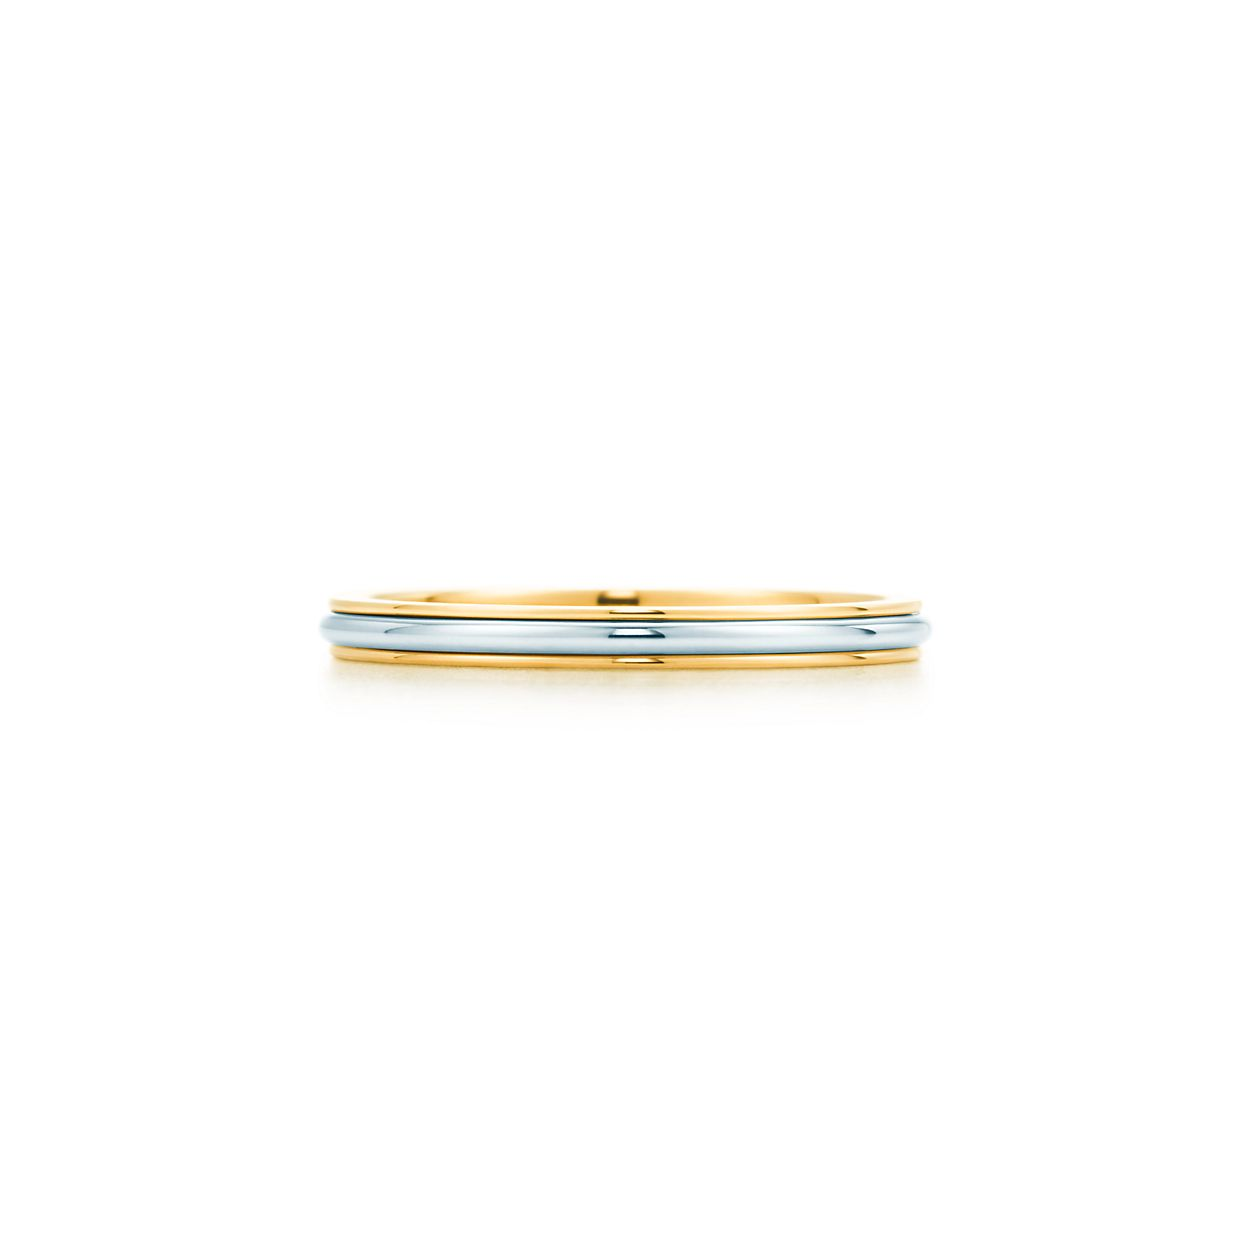 Band ring with platinum in 18k gold, 2mm wide - Size 8 1/2 Tiffany & Co.